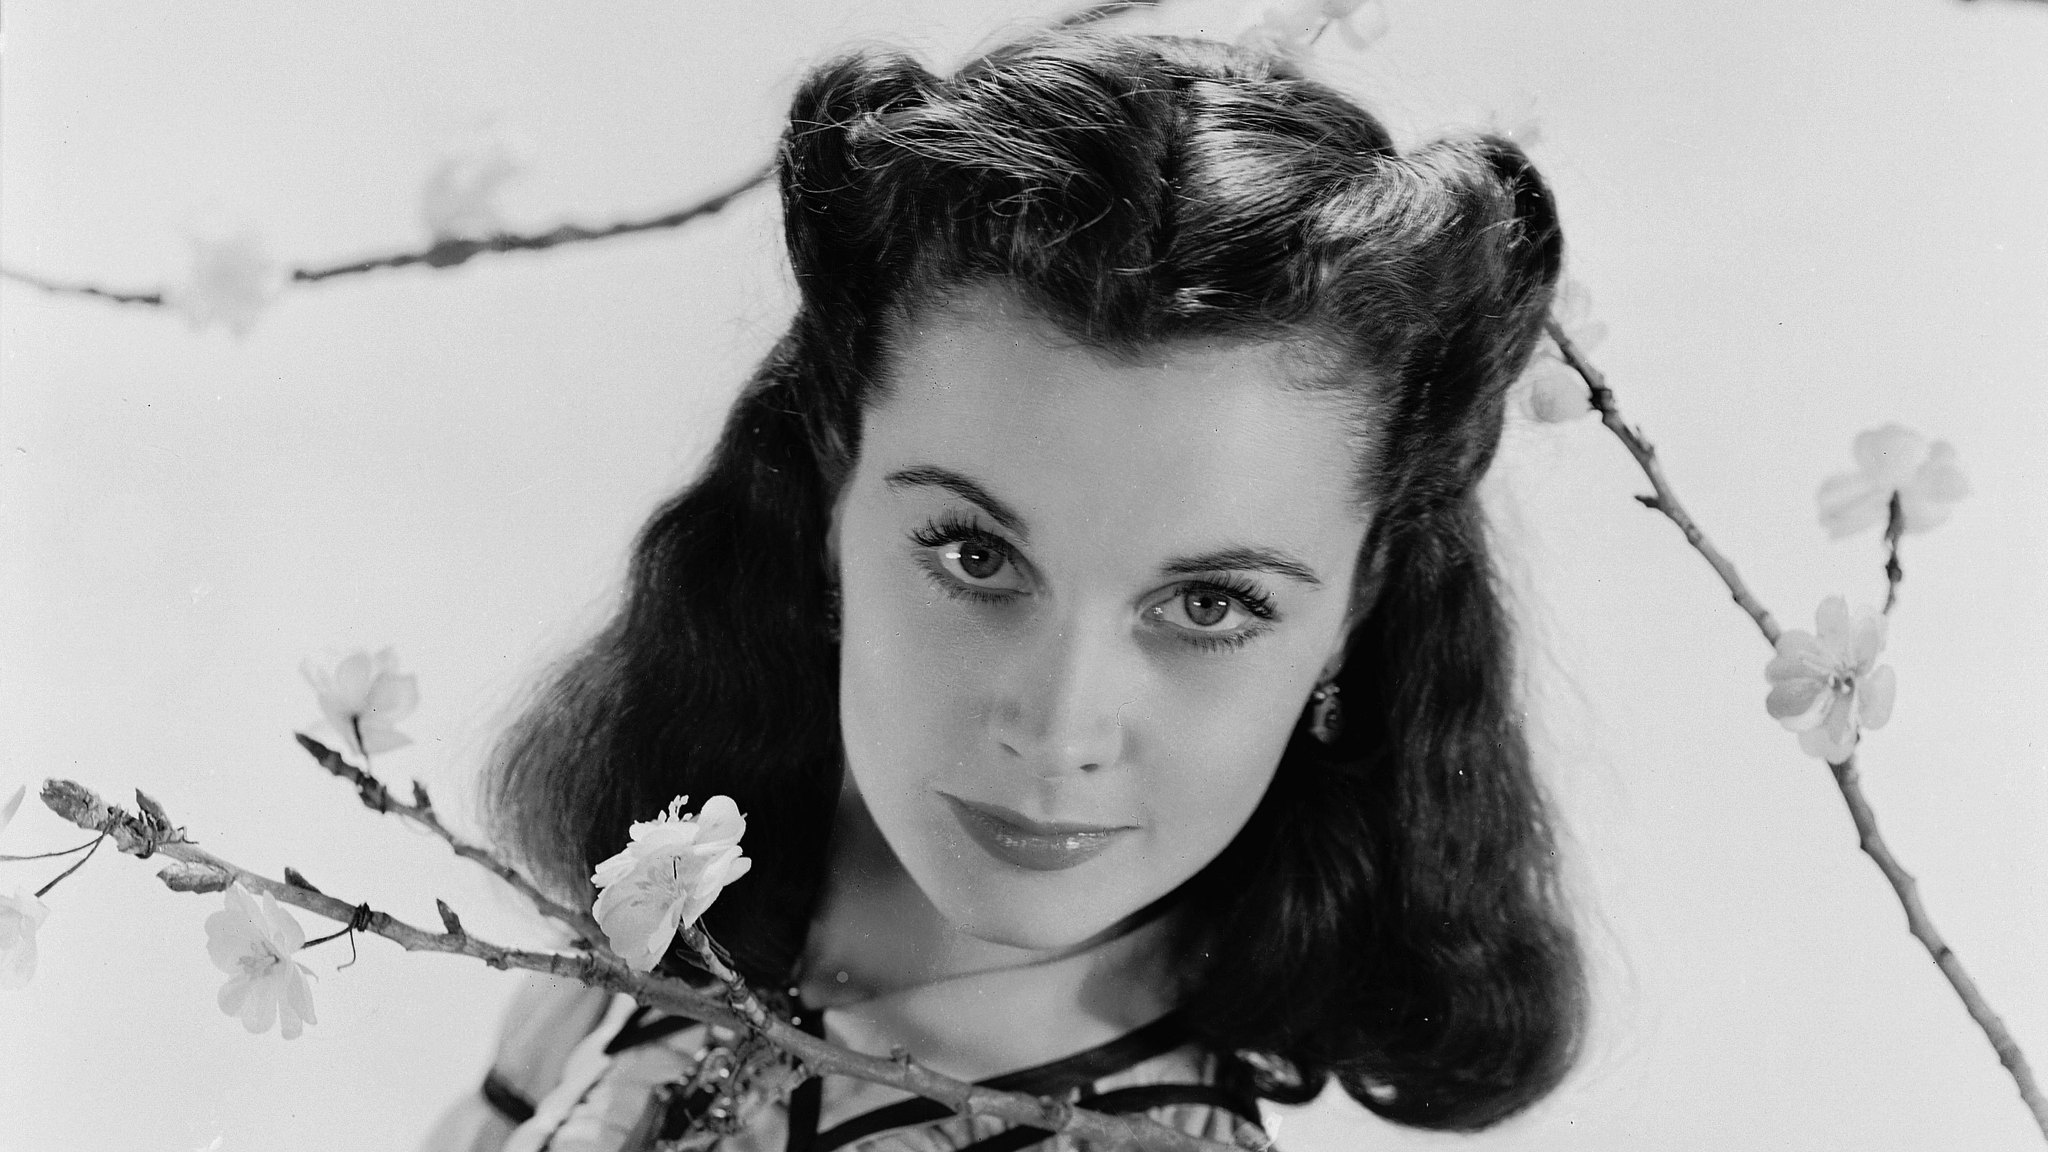 vivian leigh Hollywood icon and incandescent star of one of the most beloved films of all time, vivien leigh (1913-1967) captured hearts and minds with her fiery, luminous.